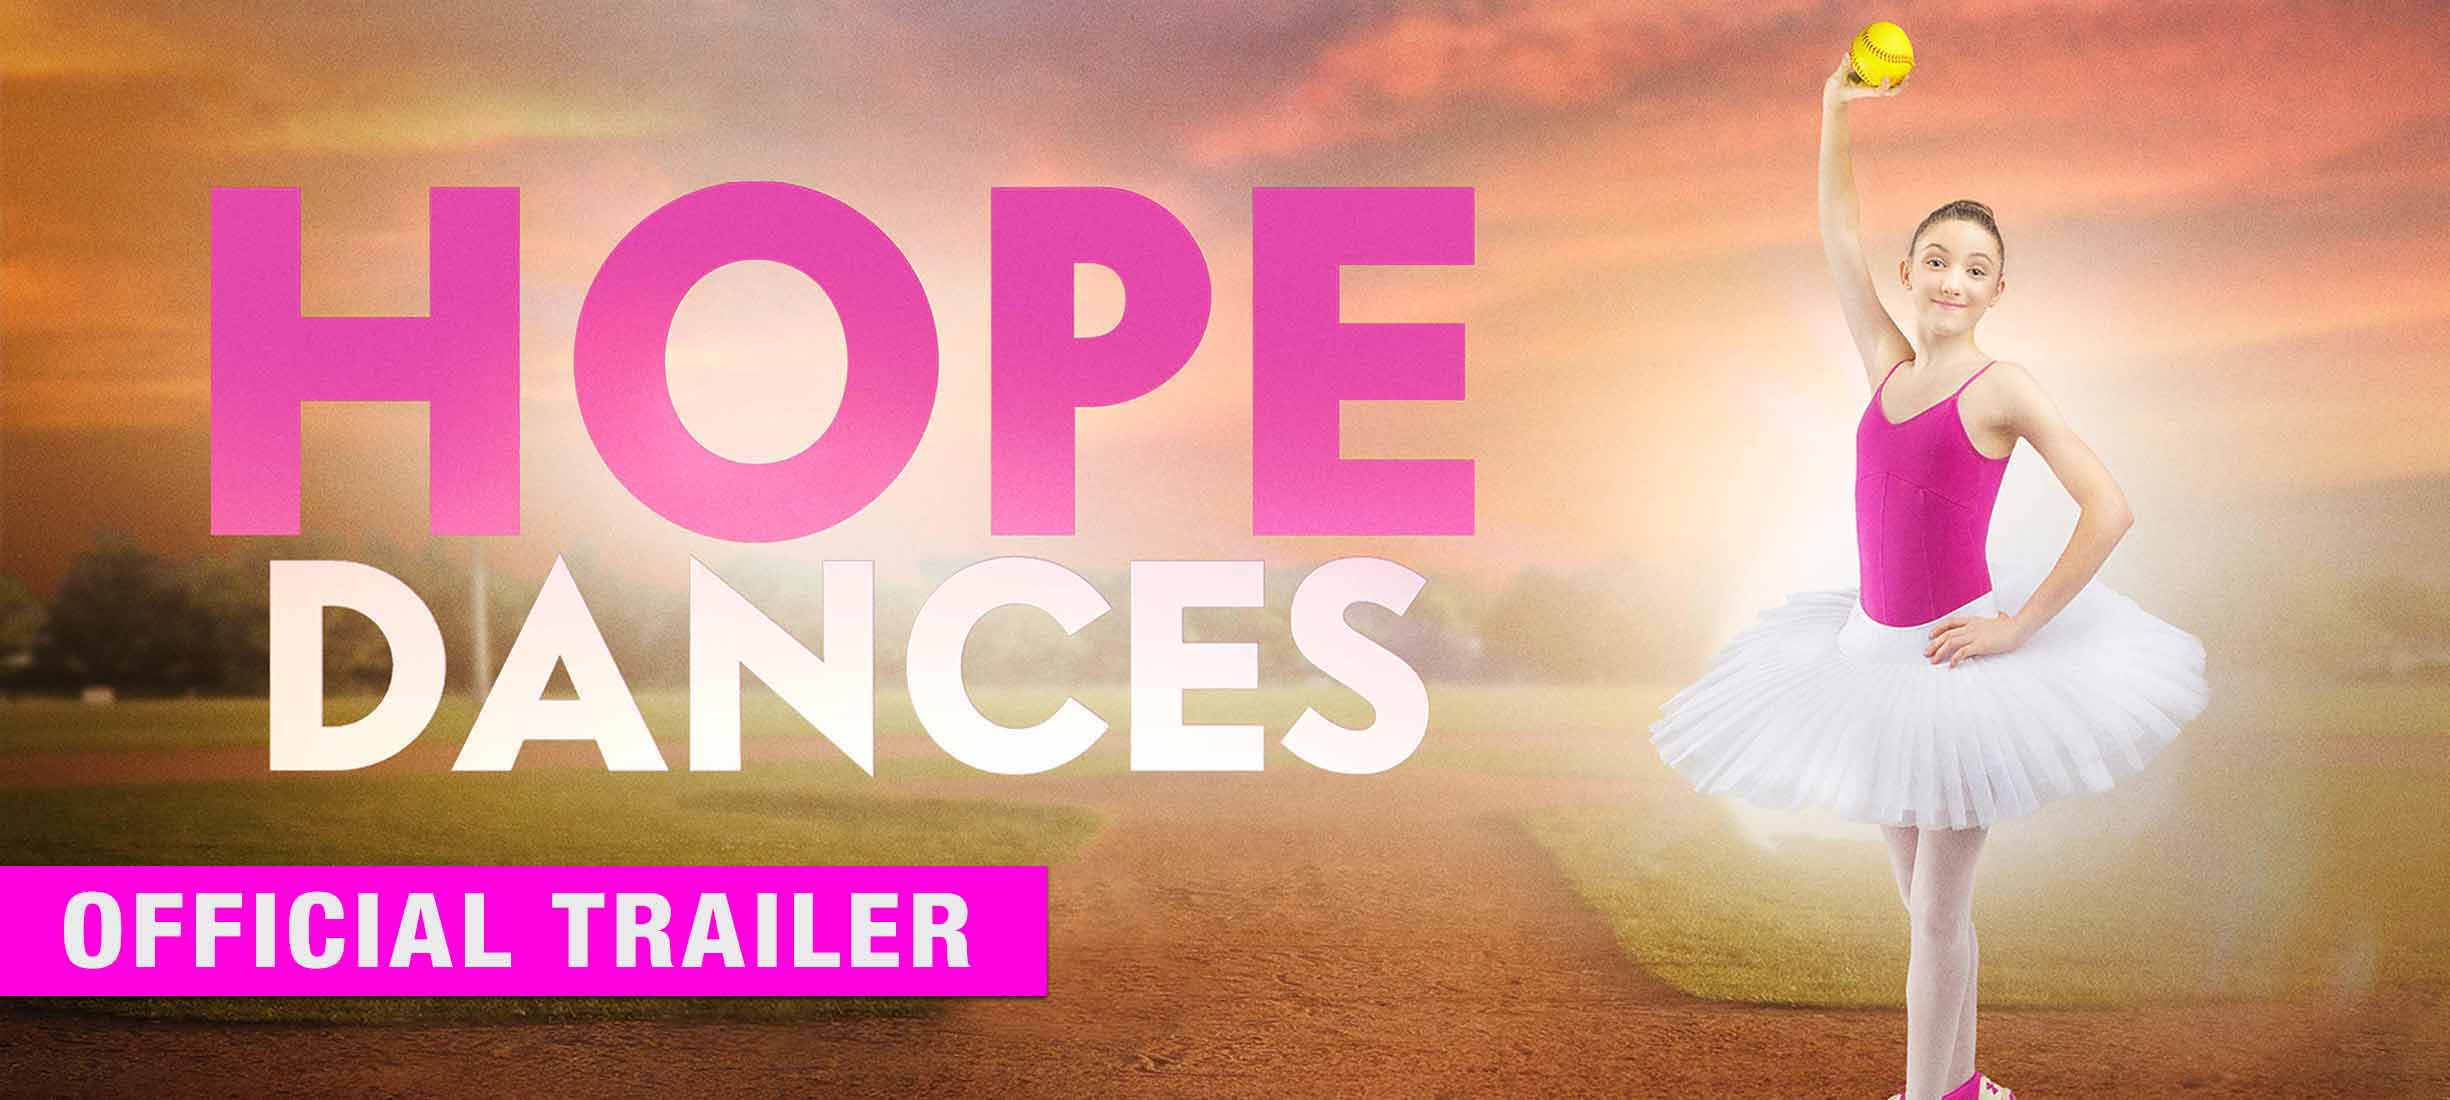 Hope Dances: Trailer